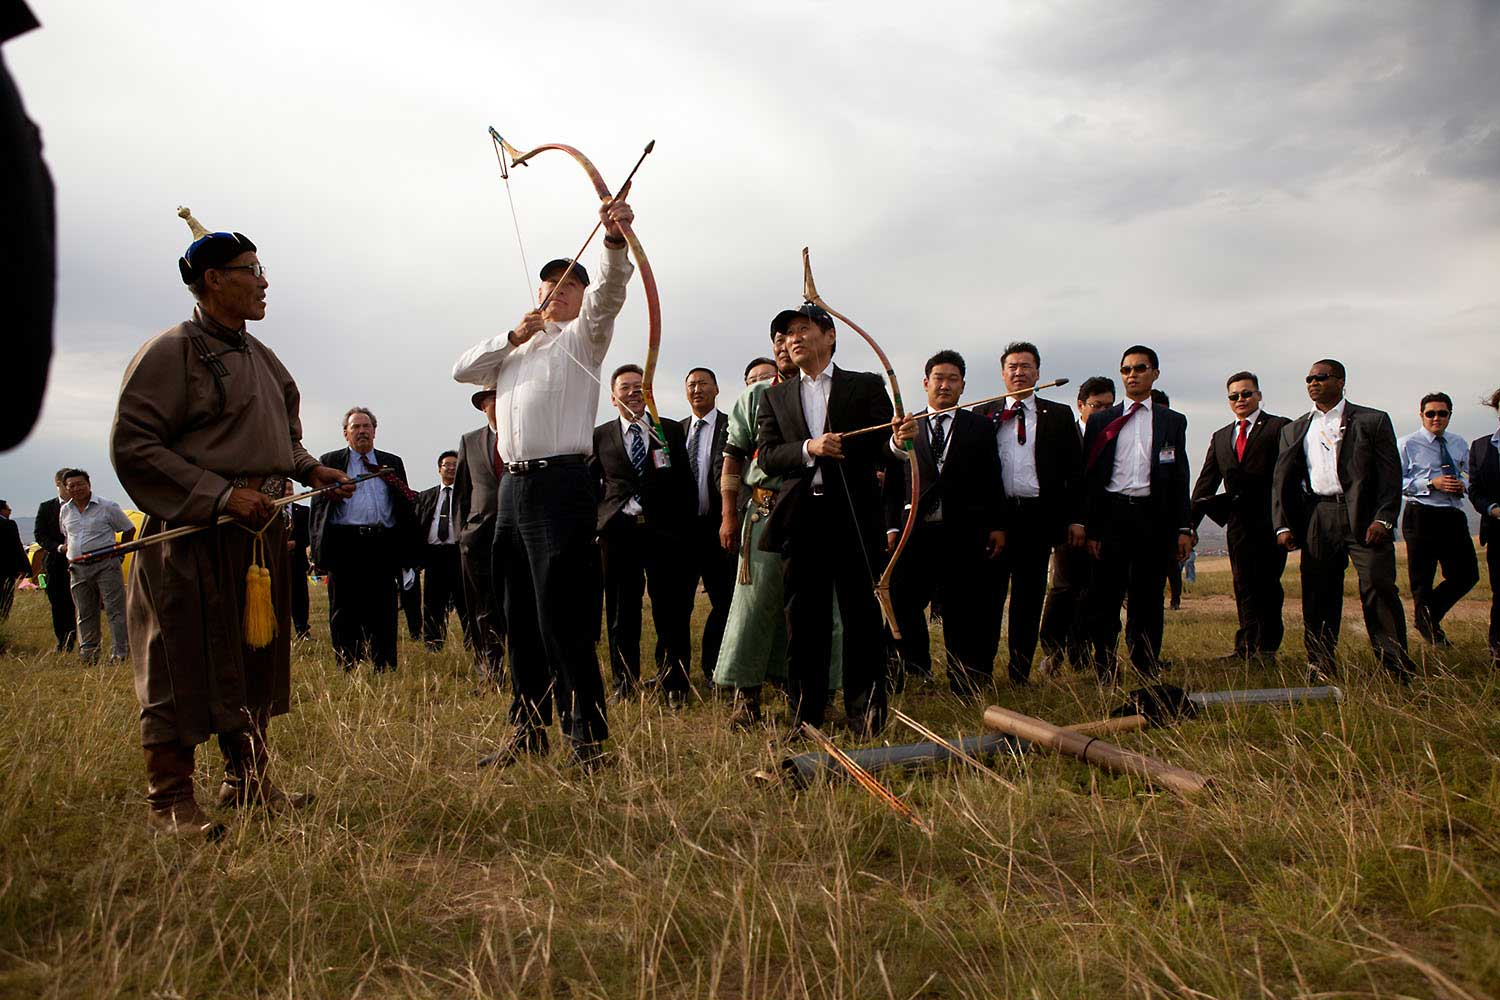 David Lienemann captured this photograph as the Vice President draws his bow during the archery portion of a cultural demonstration, outside Ulaanbaatar, Mongolia, with Mongolian Prime Minister Sukhbaatar Batbold looking on, Aug. 22, 2011. I told David when I first saw this photo that I would never have been brave enough to stand that close to the line of fire.